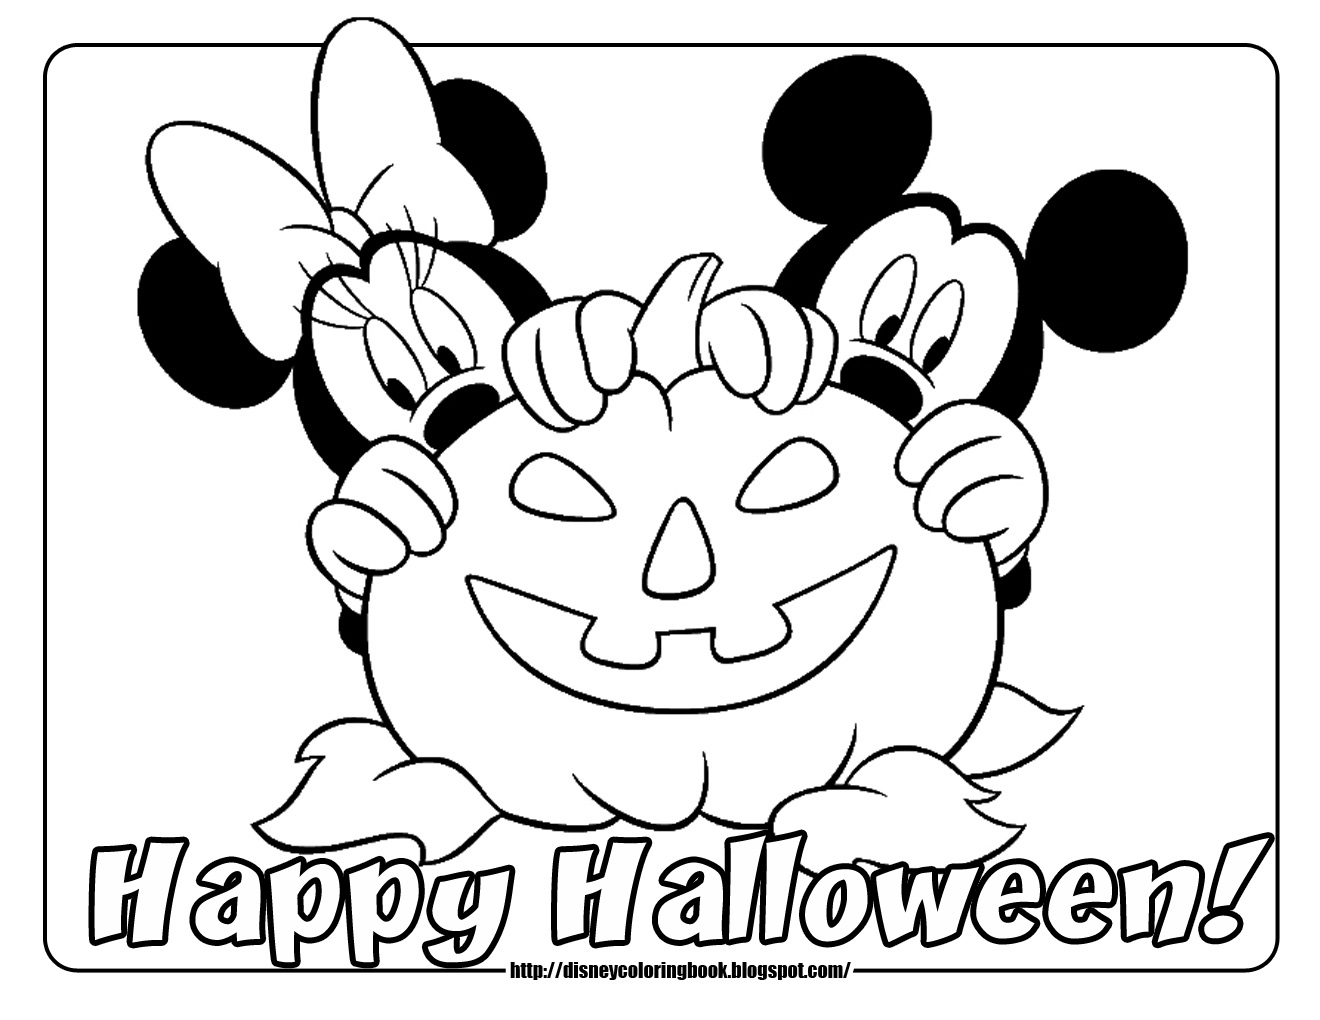 Wele to Miss Priss Mickey Mouse Batman Coloring Pages